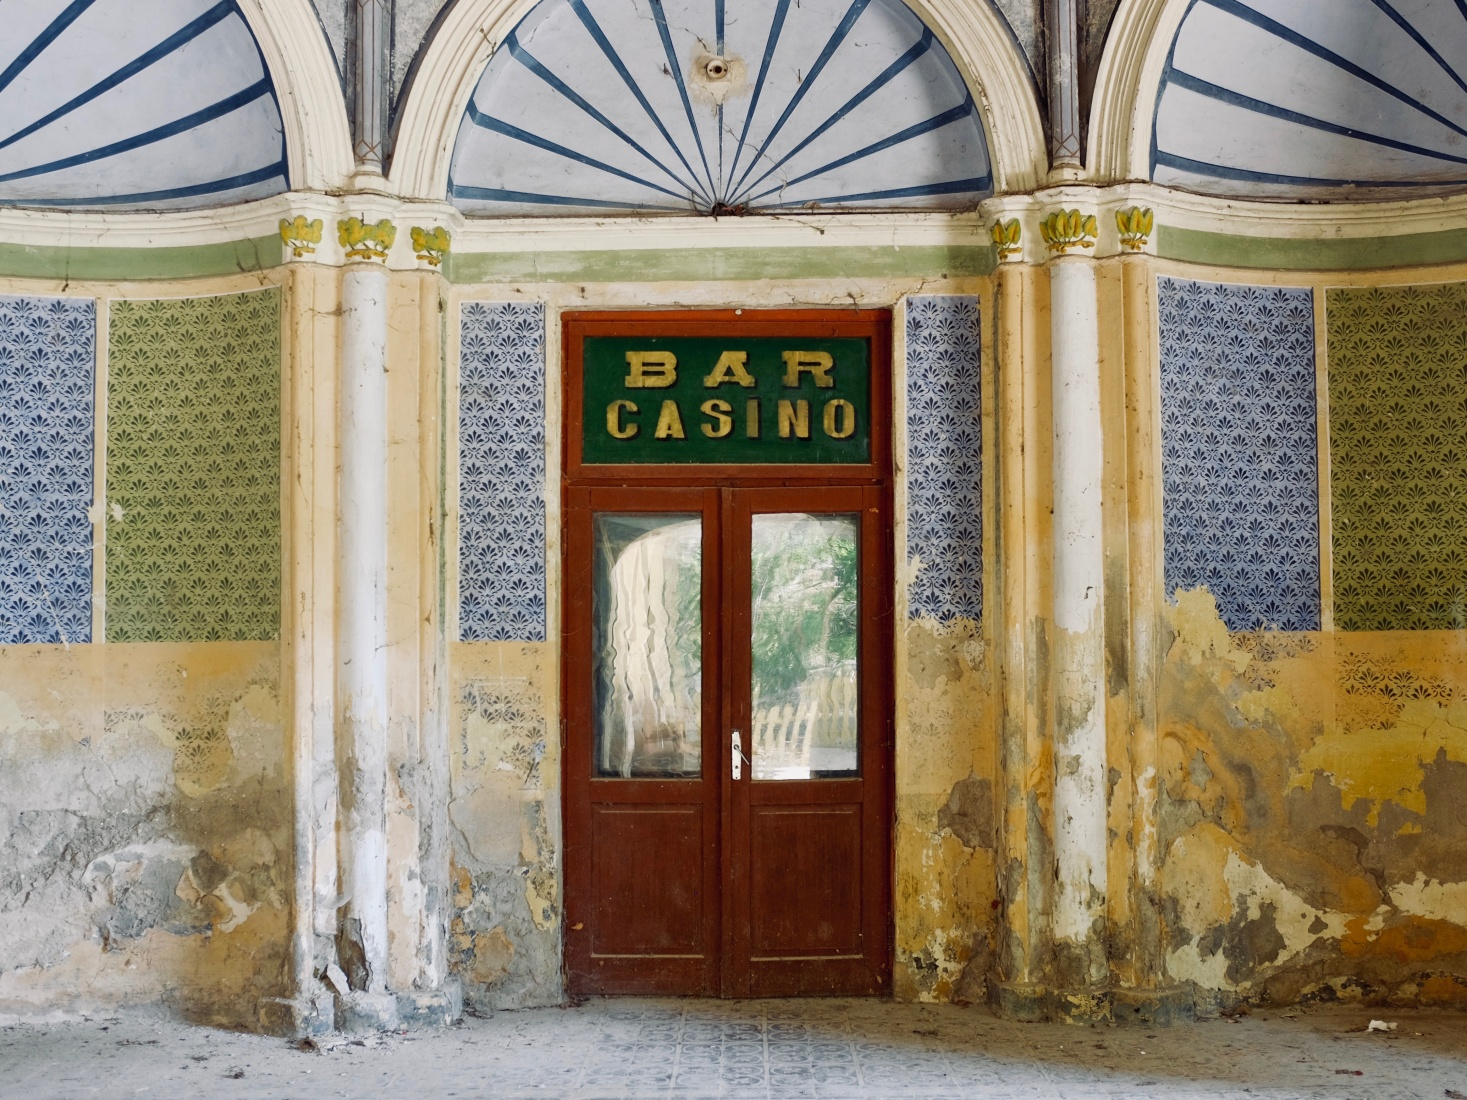 A crumbling doorway into the abandoned casino in Brașov, Romania.